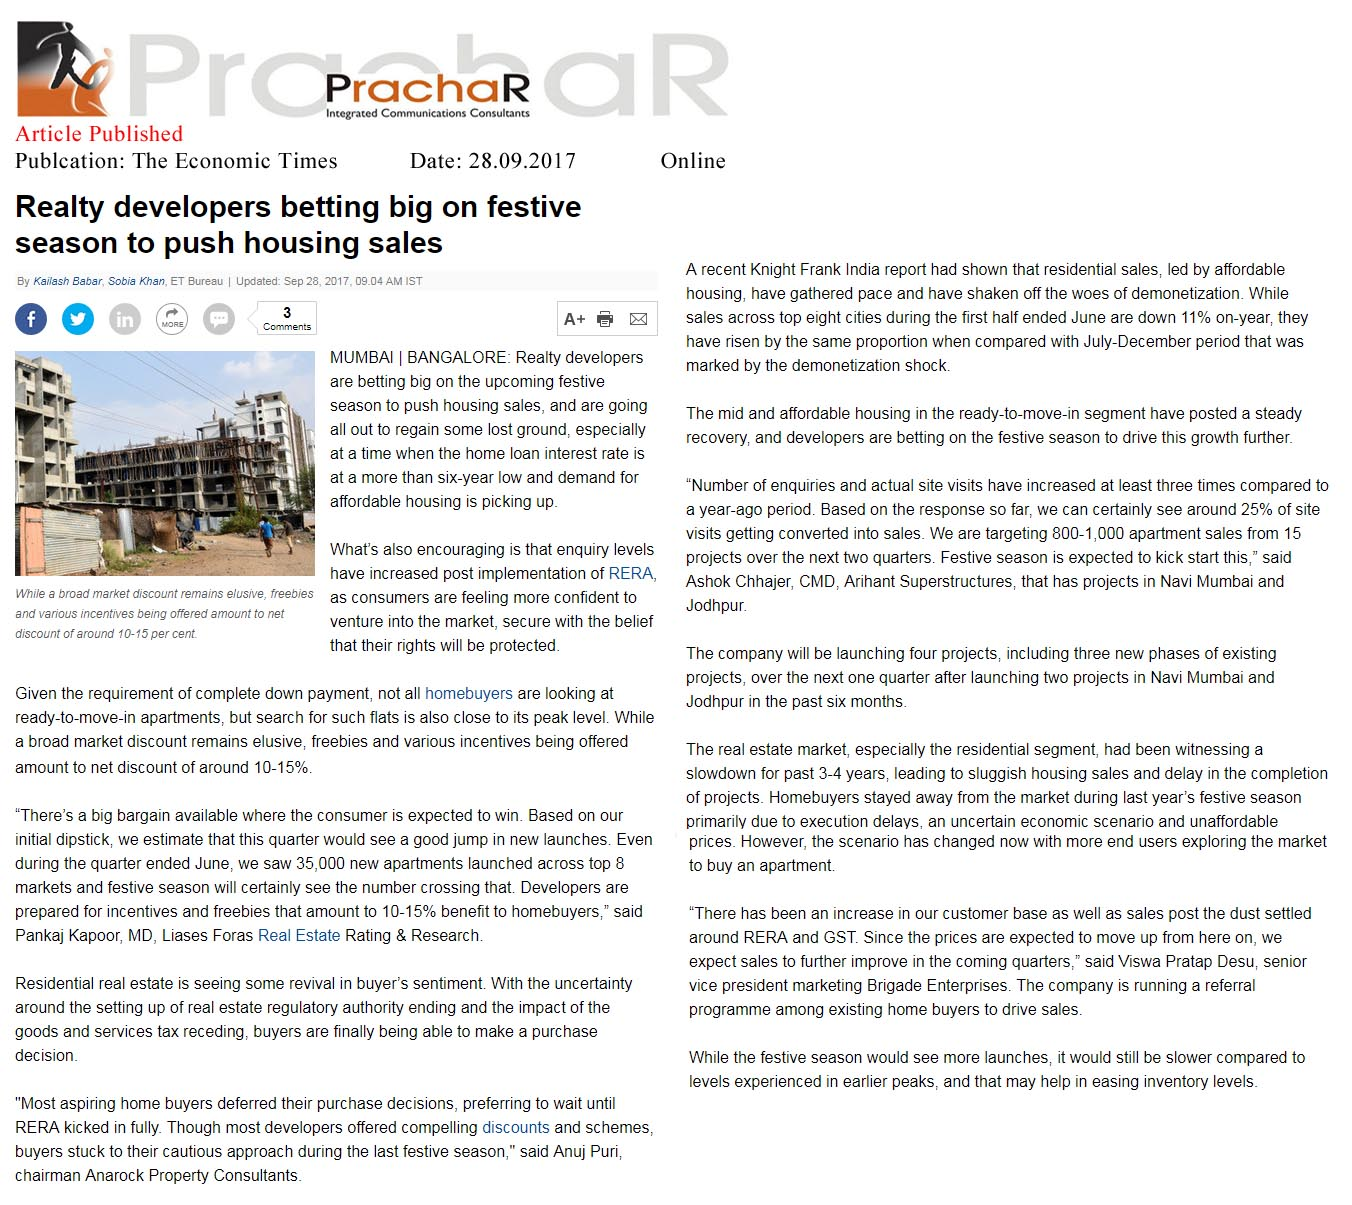 Realty developers betting big on festive season to push housing sales—The Economic Times-Online